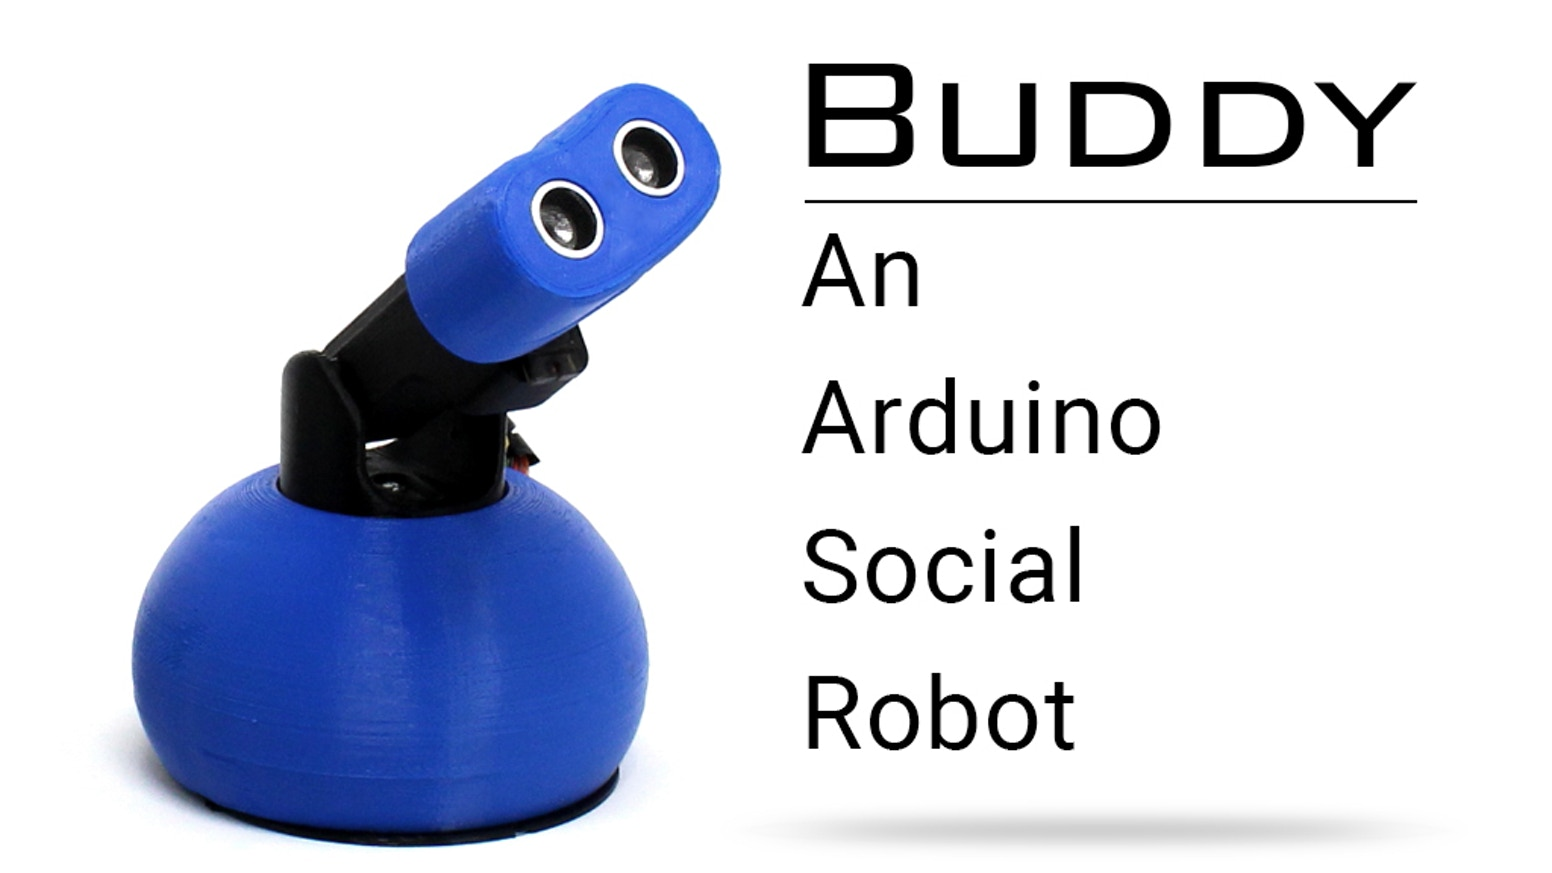 A Desktop Interactive 3D Printed Arduino Social Robotics Kit  for Fun and STEM Education